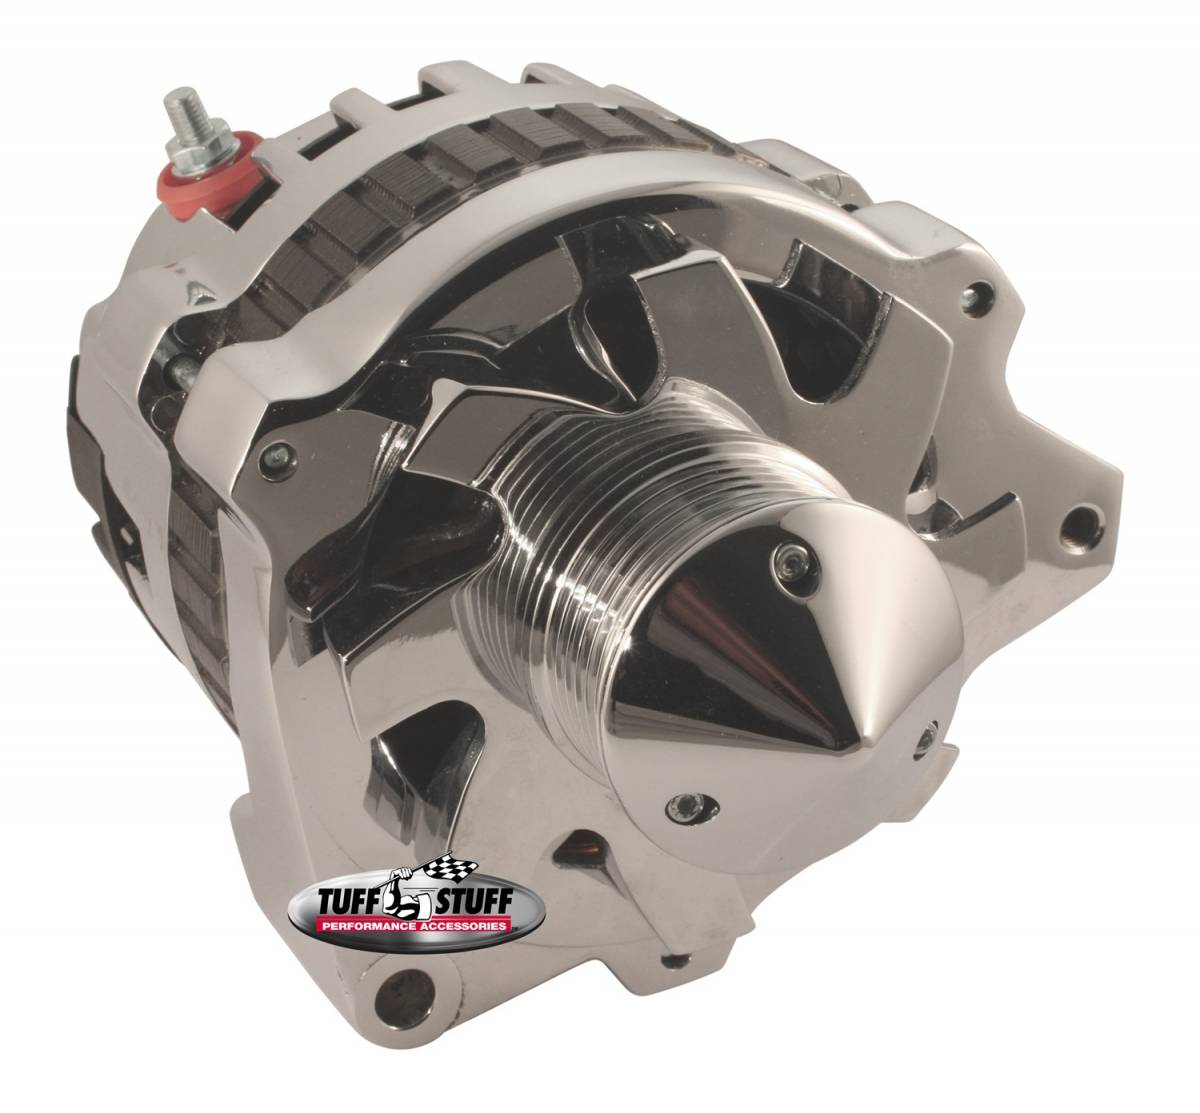 Tuff Stuff Performance - Silver Bullet Alternator 160 AMP 1 Wire Or OEM Hookup 6 Groove Pulley Spike Resistant Diodes Chrome 7860ABULL6G